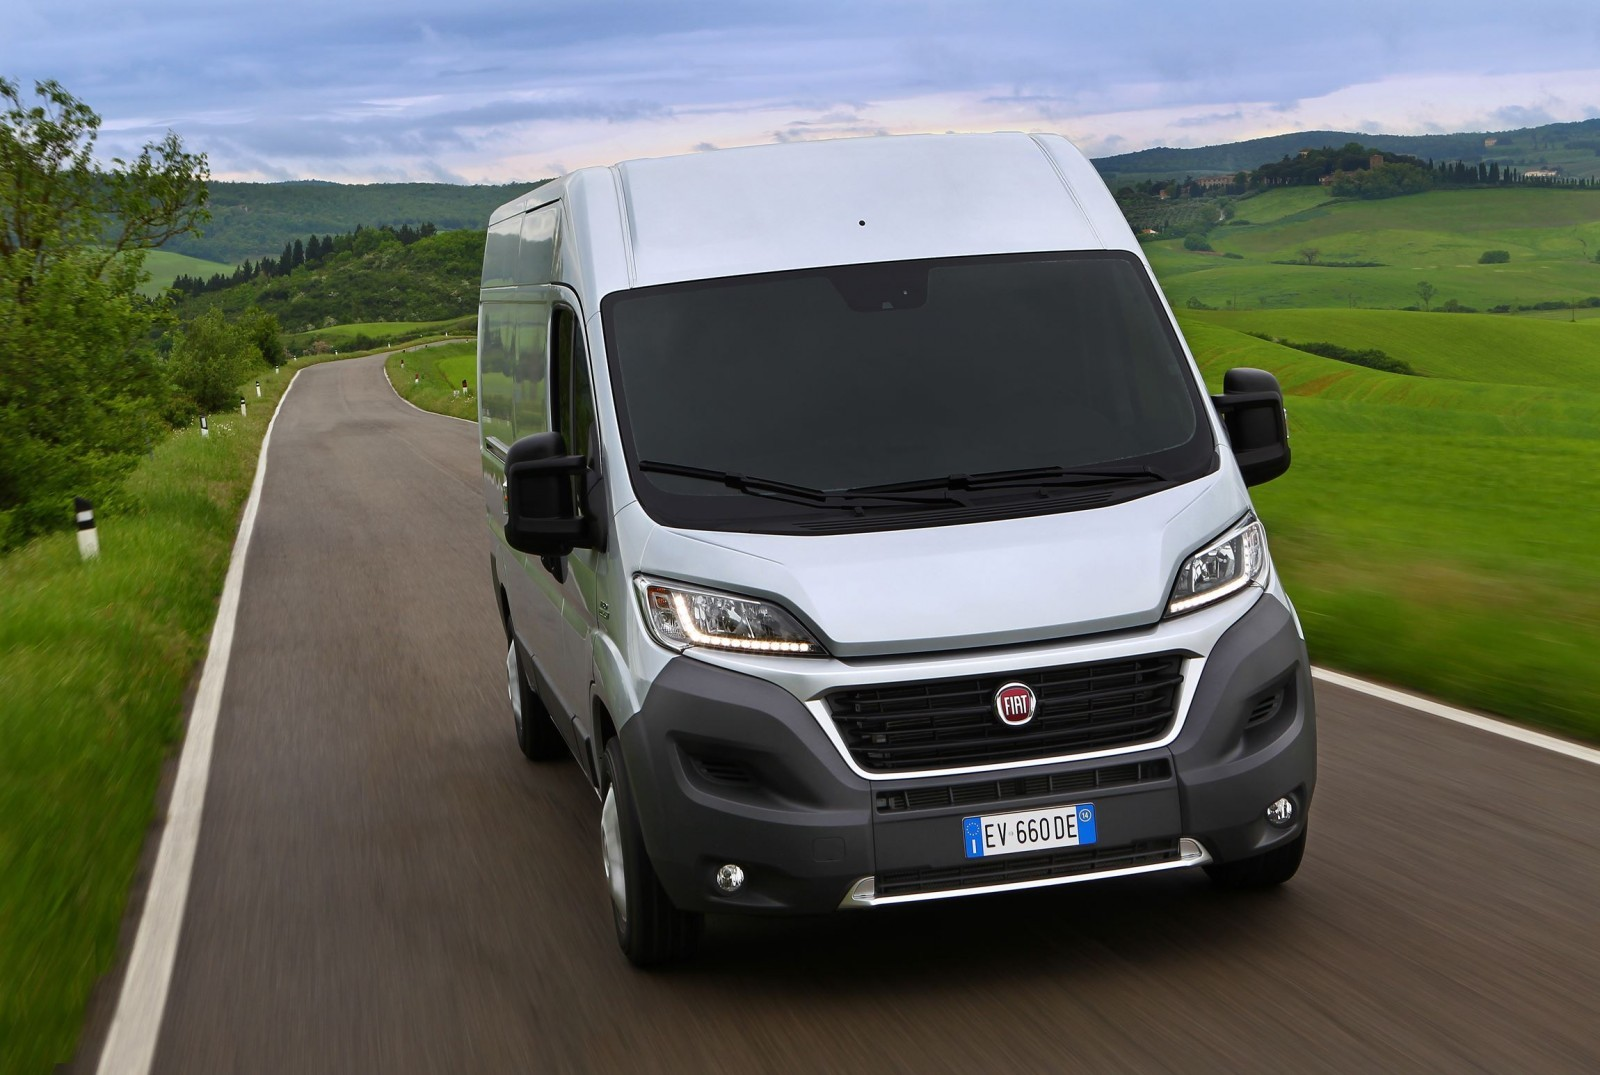 2015 fiat ducato 4x4 expedition concept teases new promaster drivetrain option. Black Bedroom Furniture Sets. Home Design Ideas